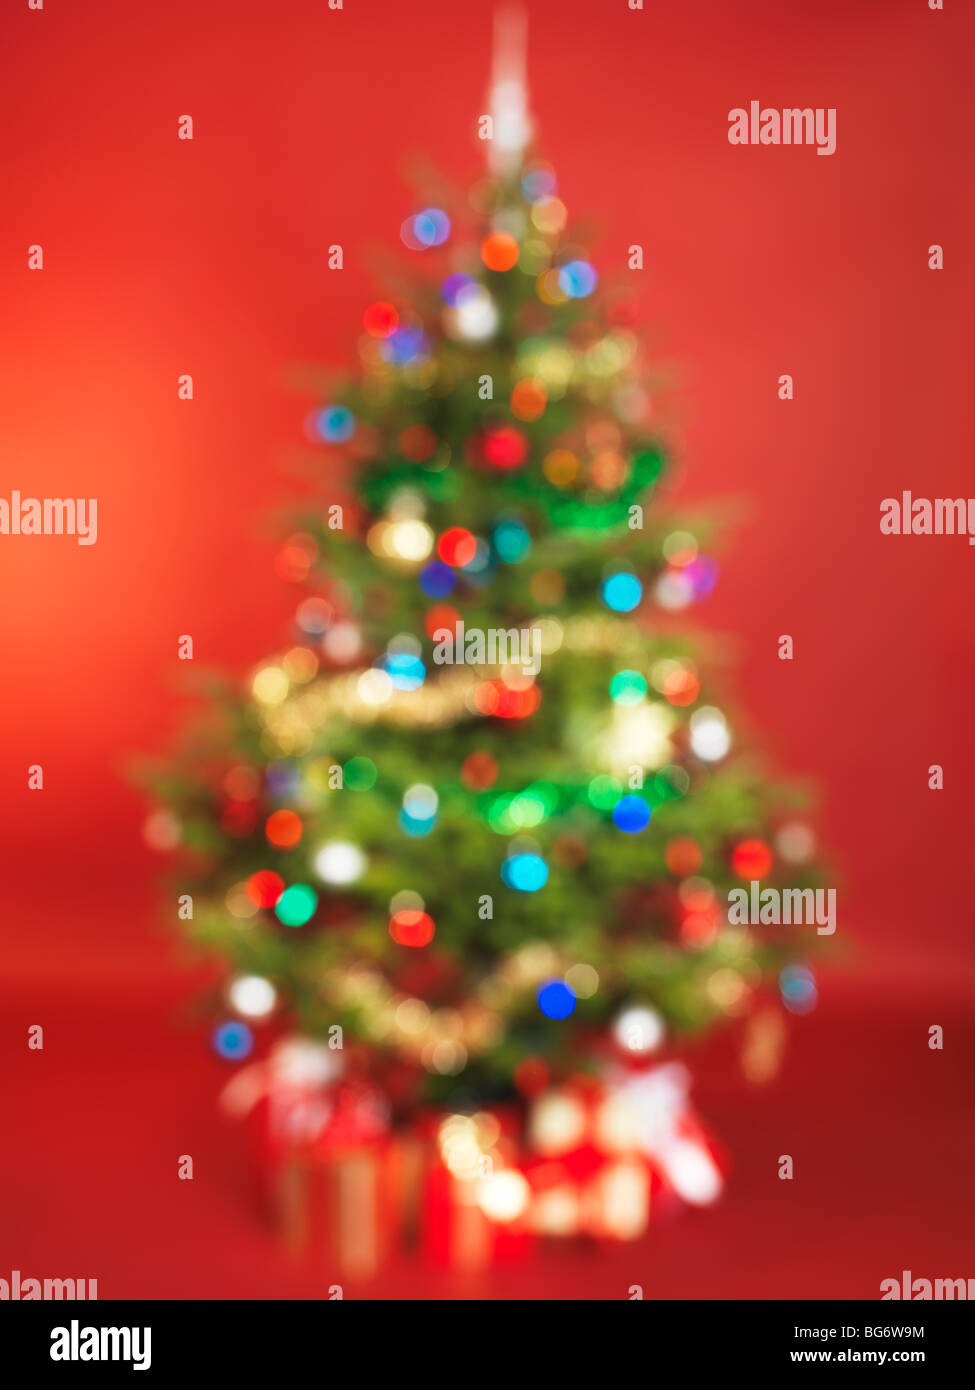 Out of focus decorated Christmas tree isolated on red background - Stock Image